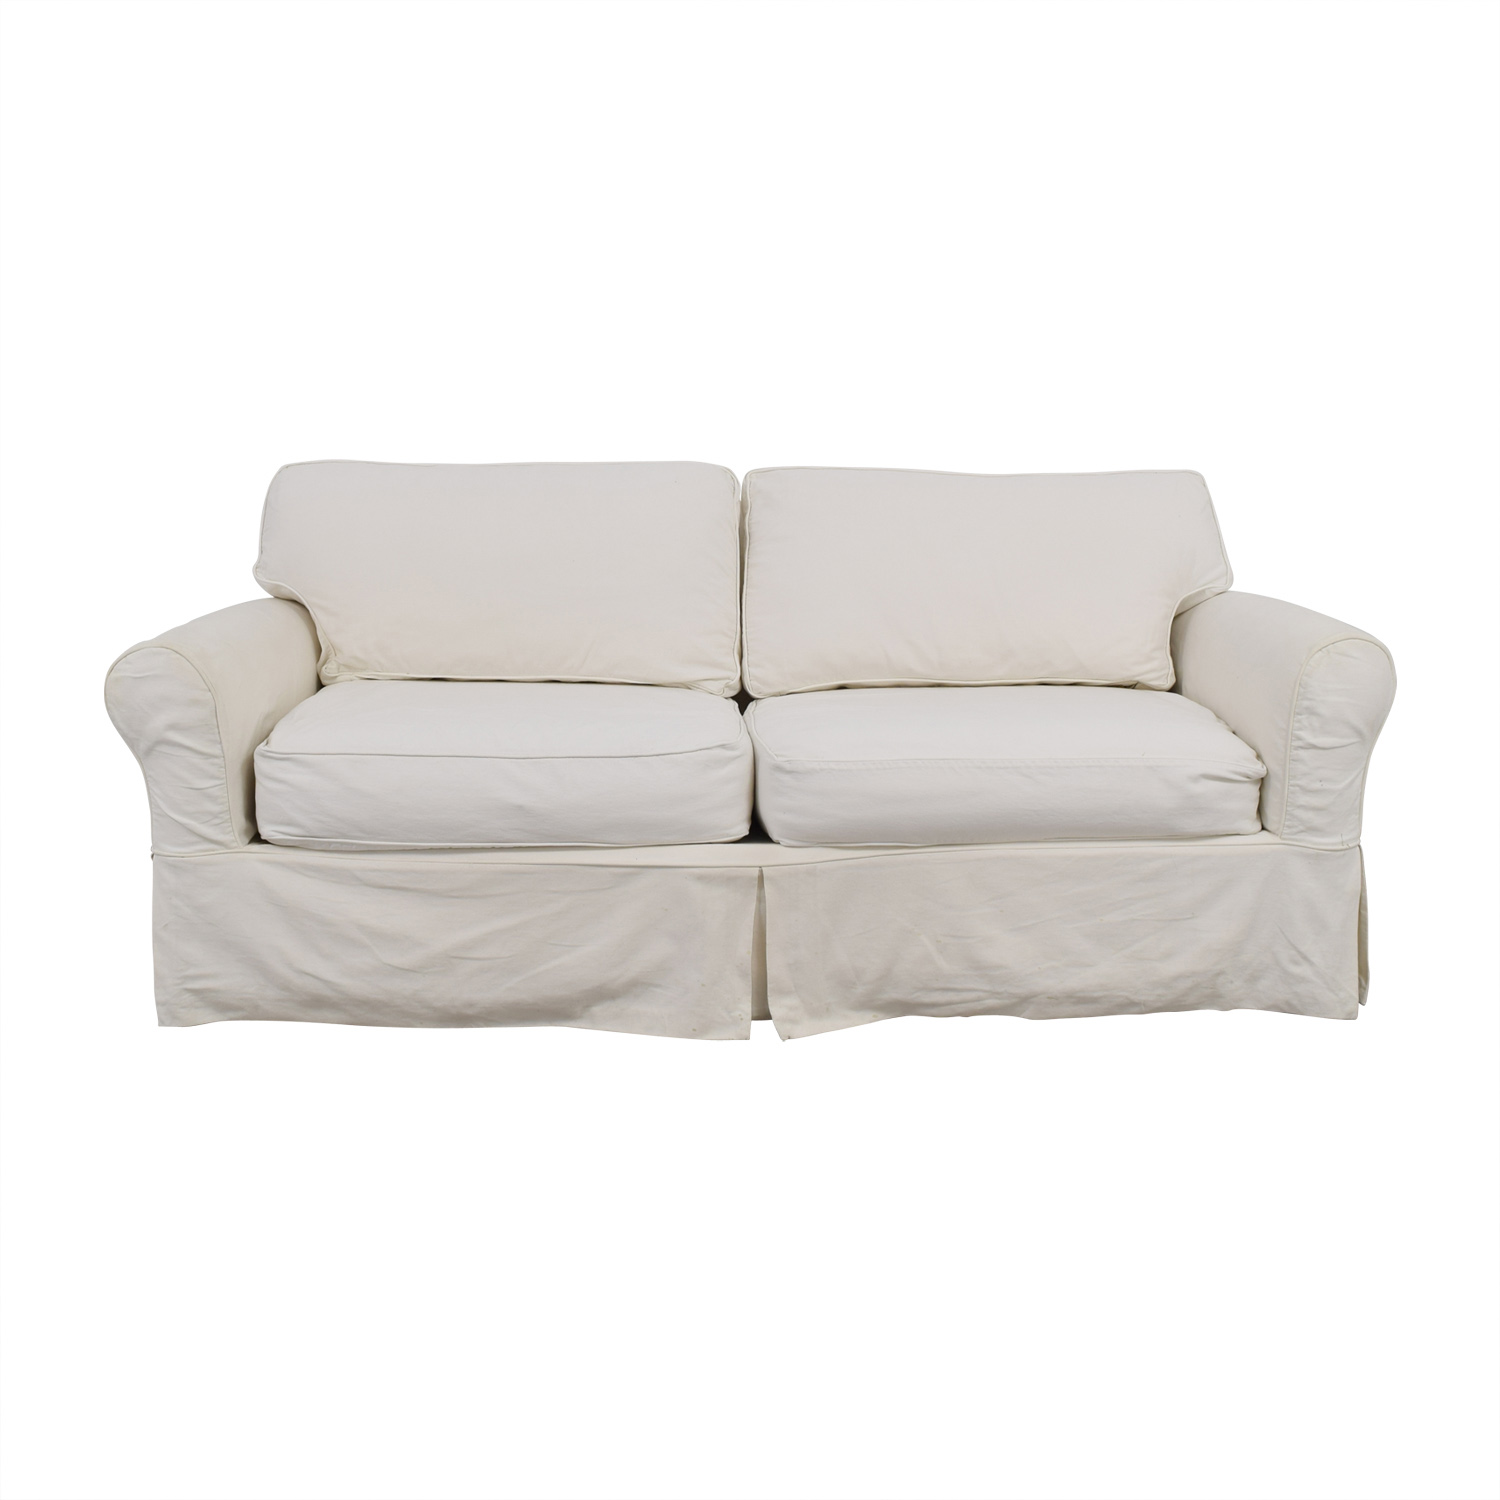 cindy crawford sofa quality finn juhl baker replica shop used furniture from top brands